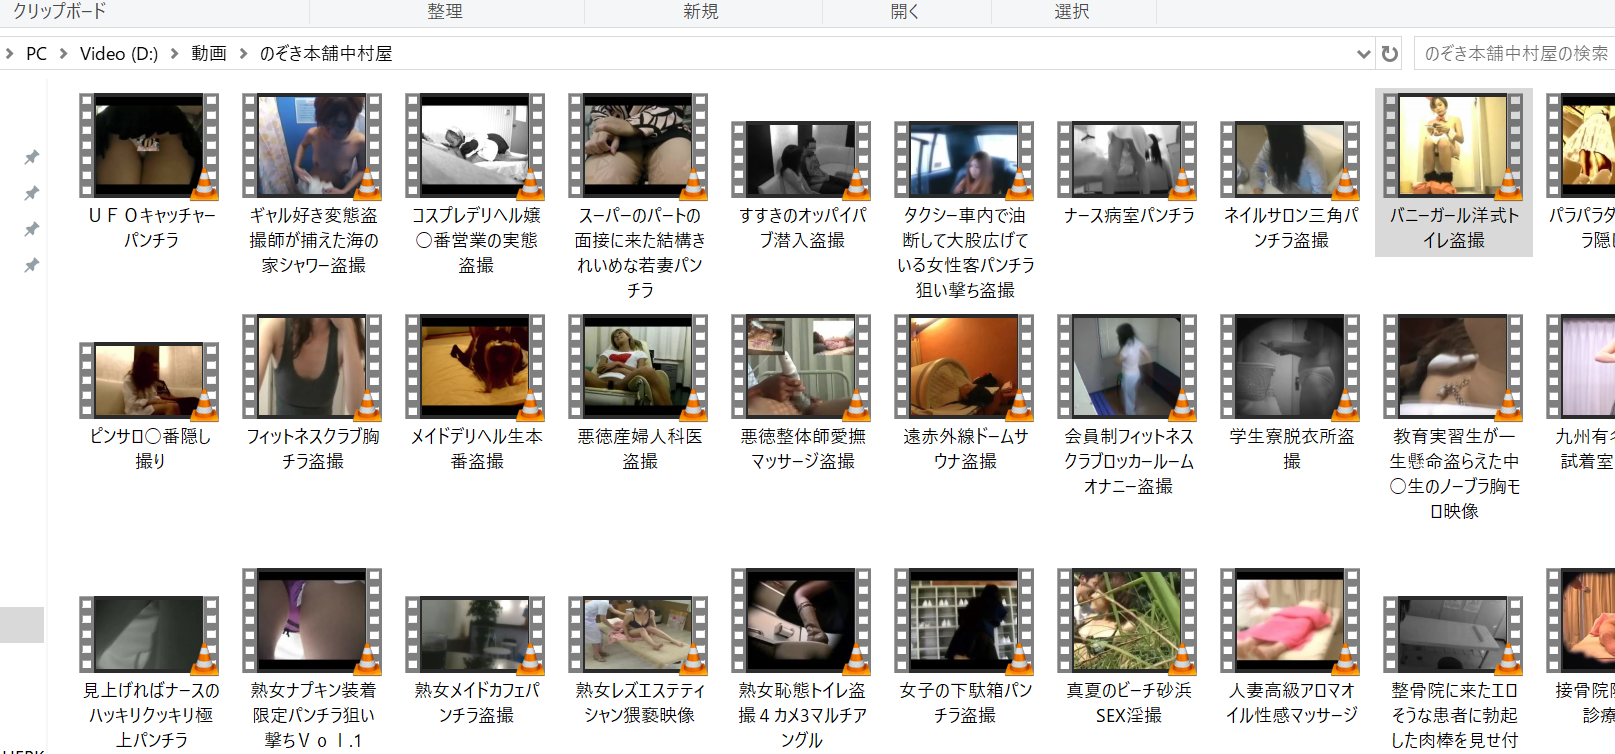 some of the uncensored JAV erotic videos I actually downloaded from the Nozoki Nakamuraya